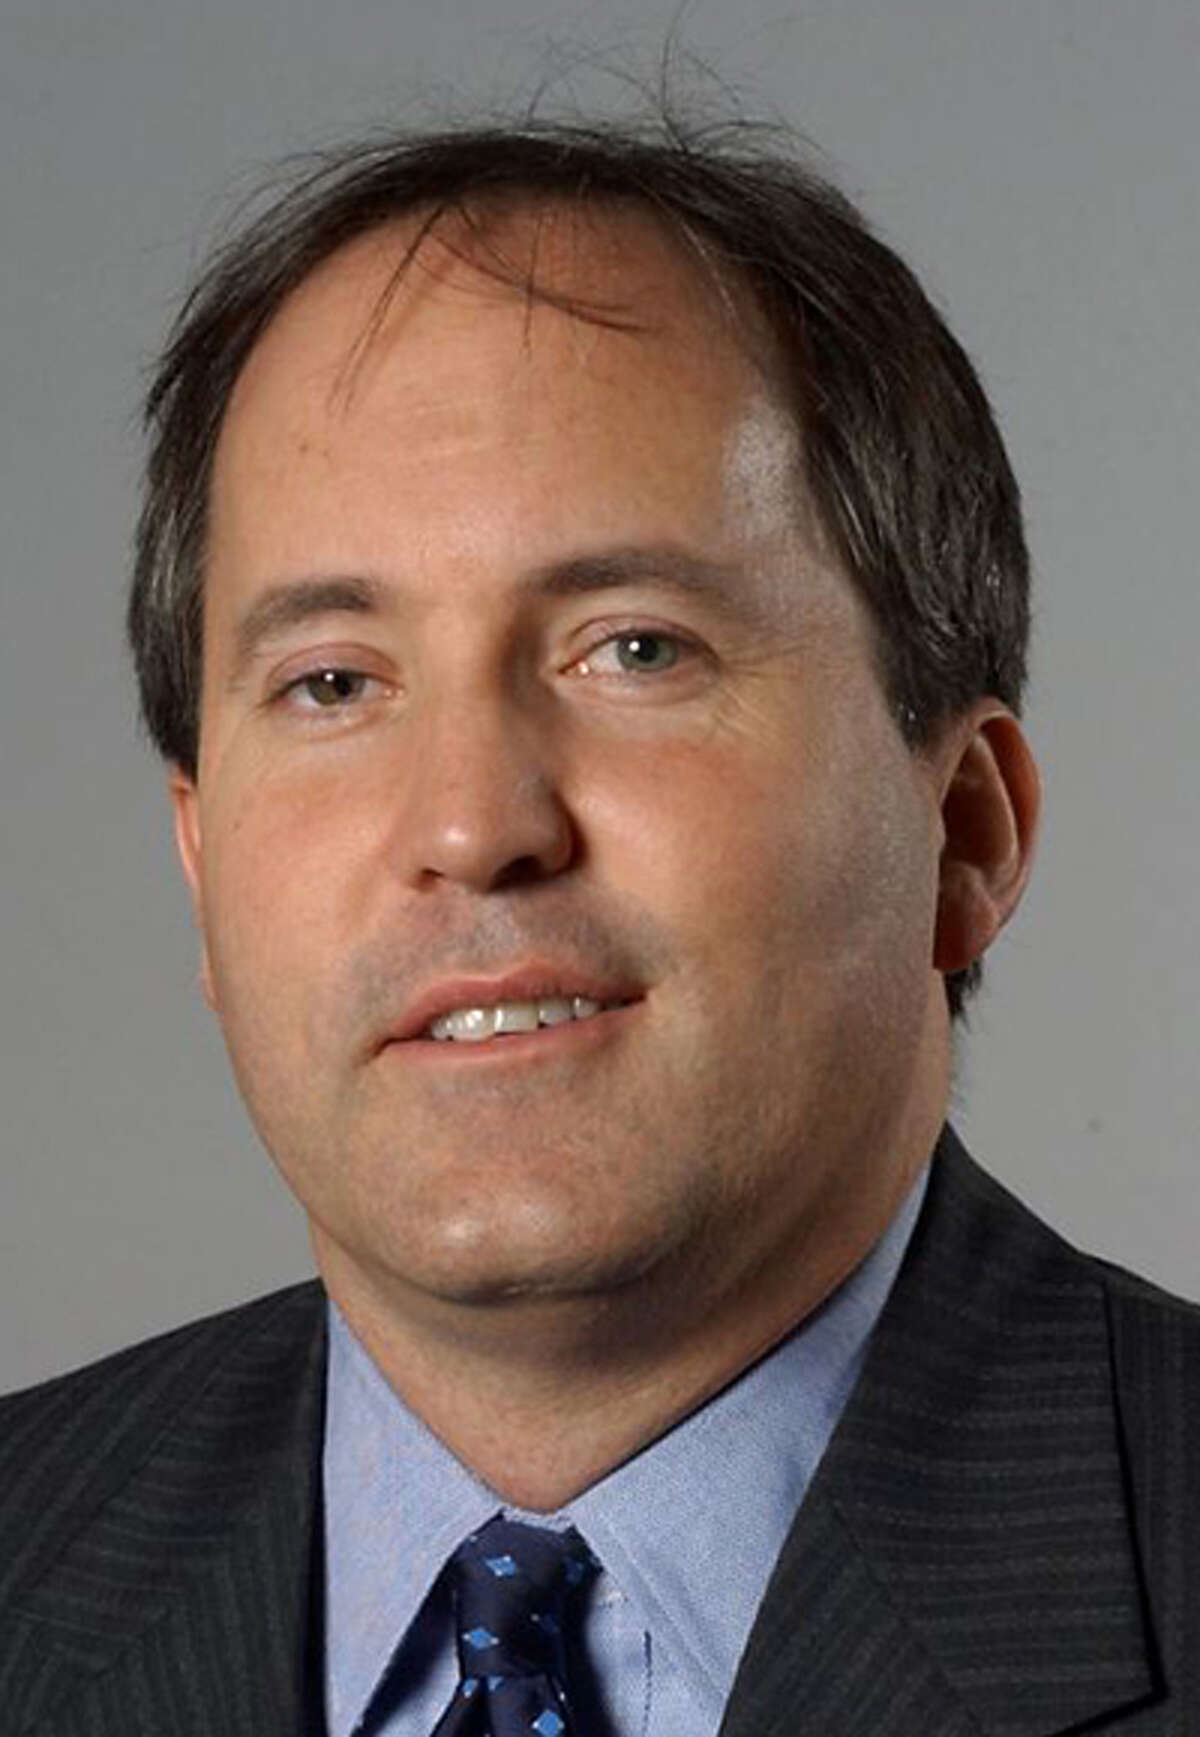 Attorney General Ken Paxton's office has signaled that it may take the case to the Supreme Court.